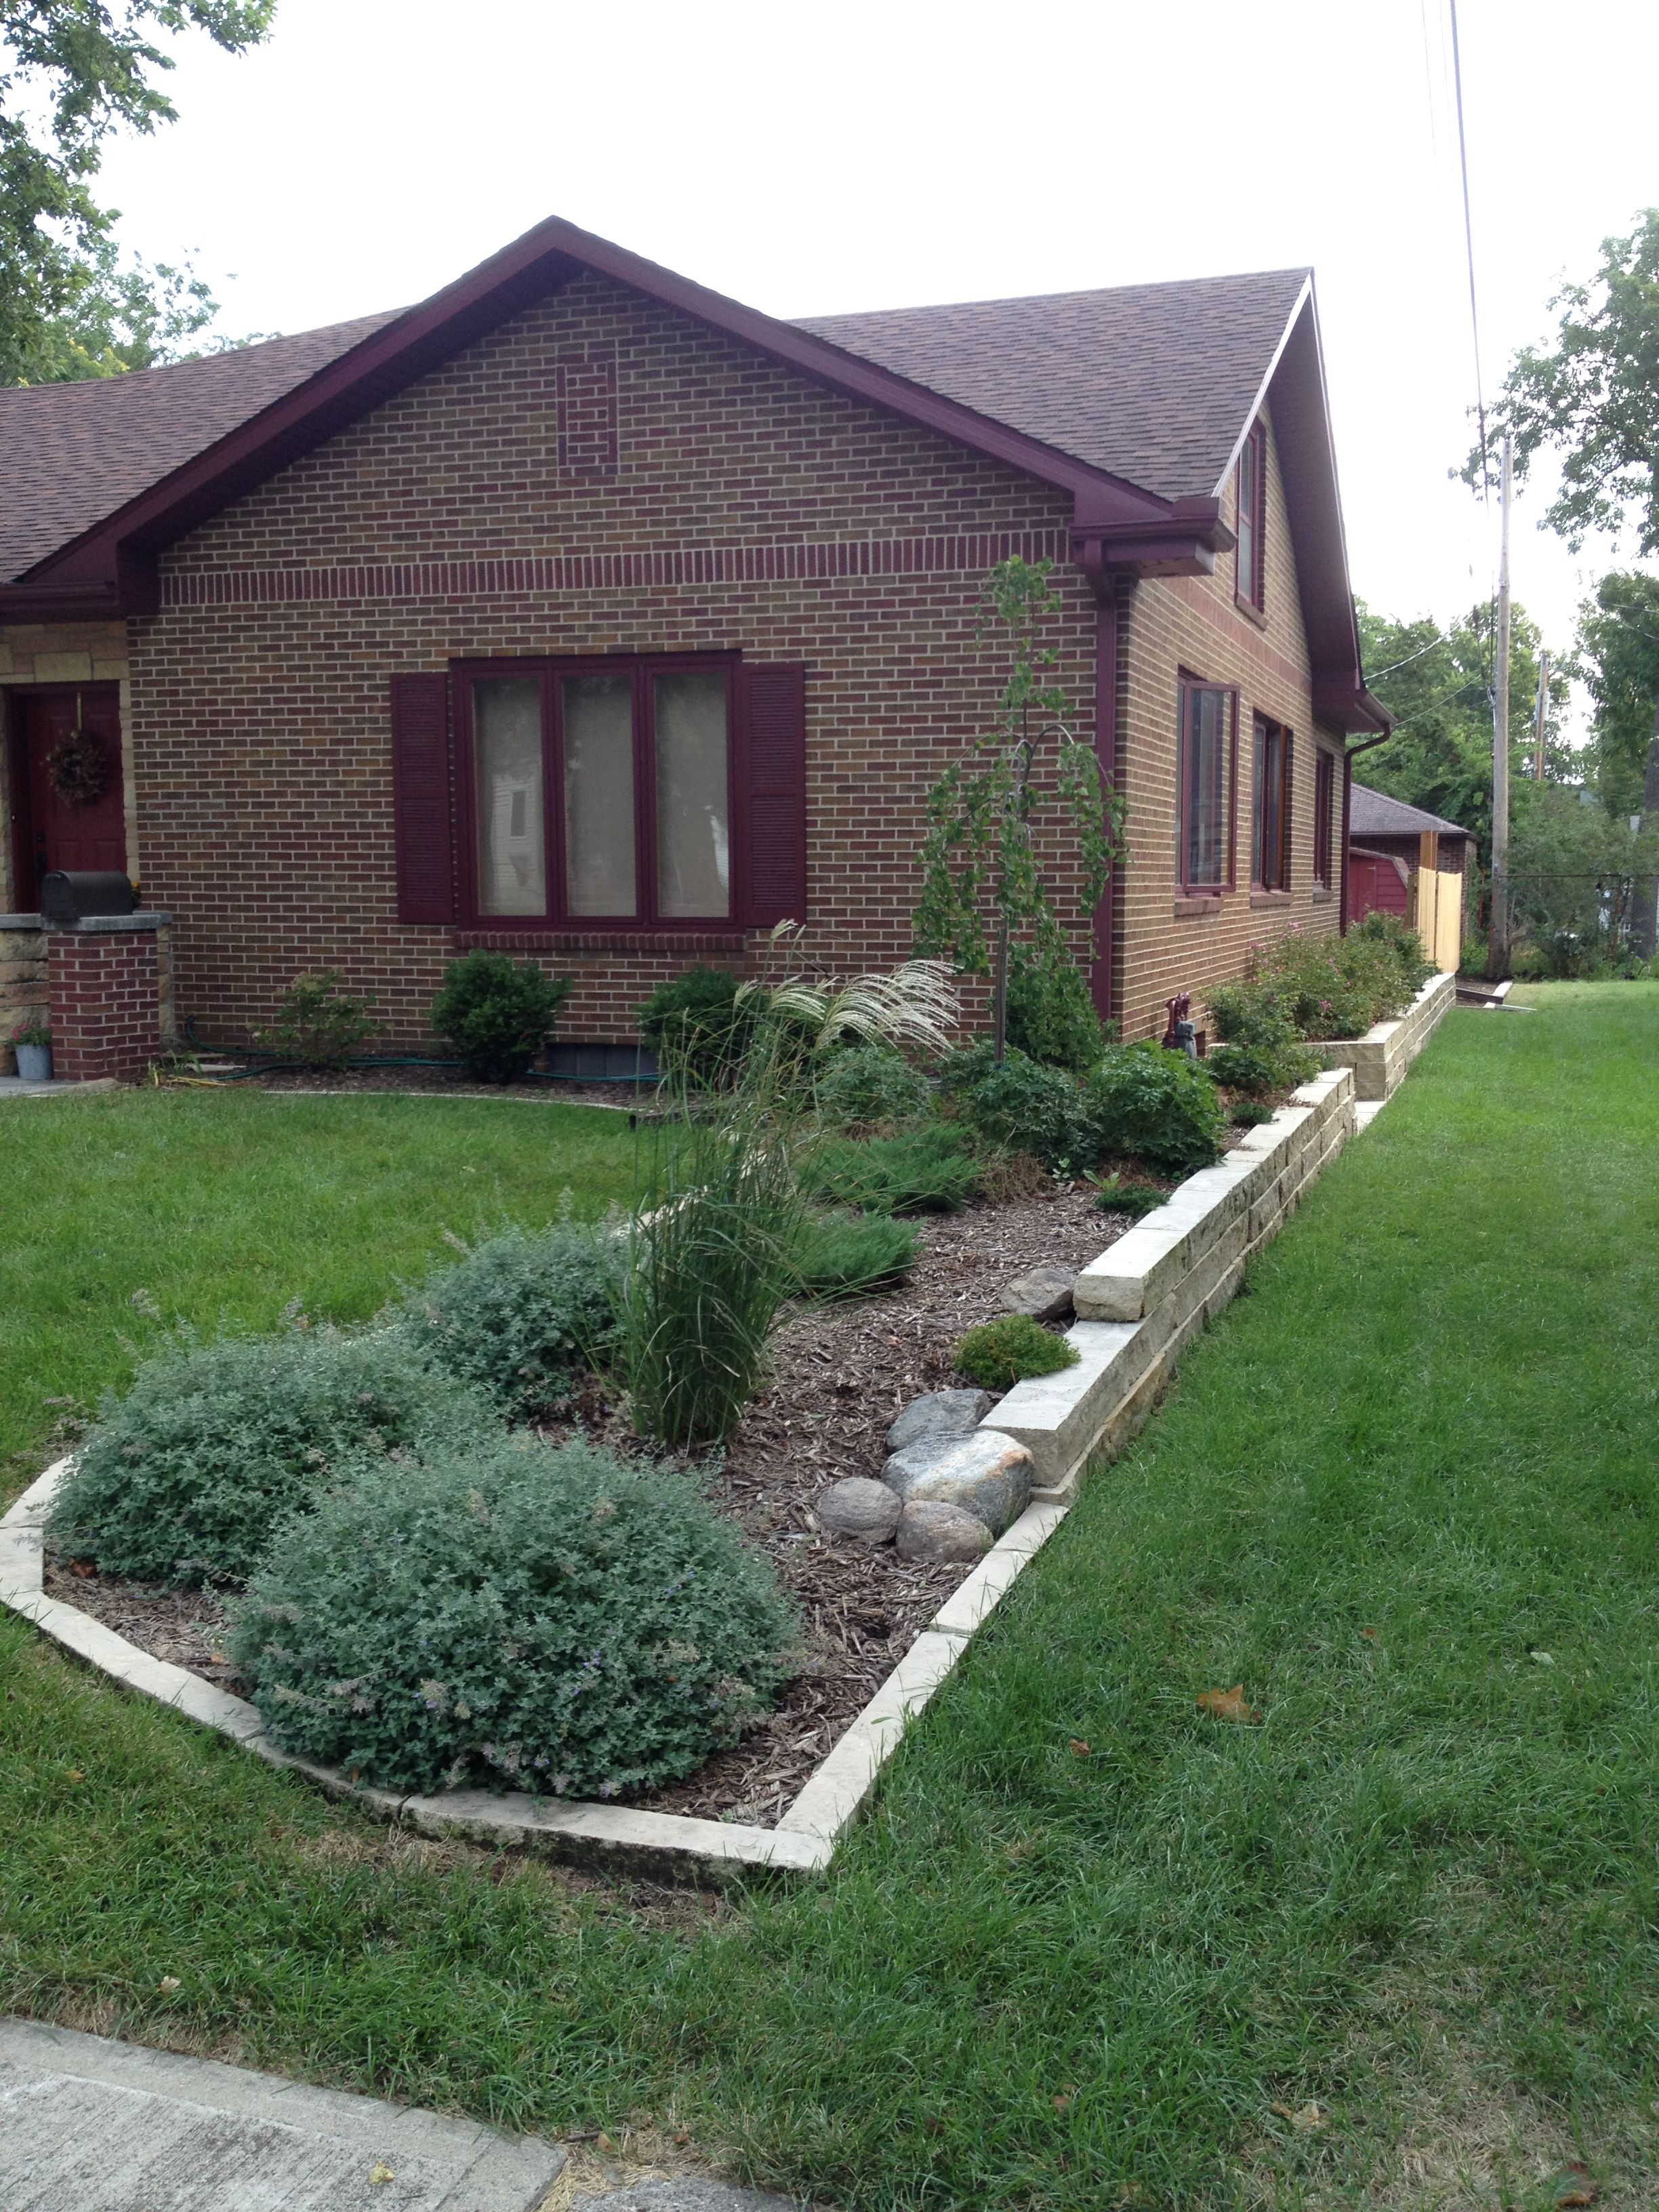 Friendly Property Line Border Planting Front Yard Landscaping Yard Landscaping Front Yard